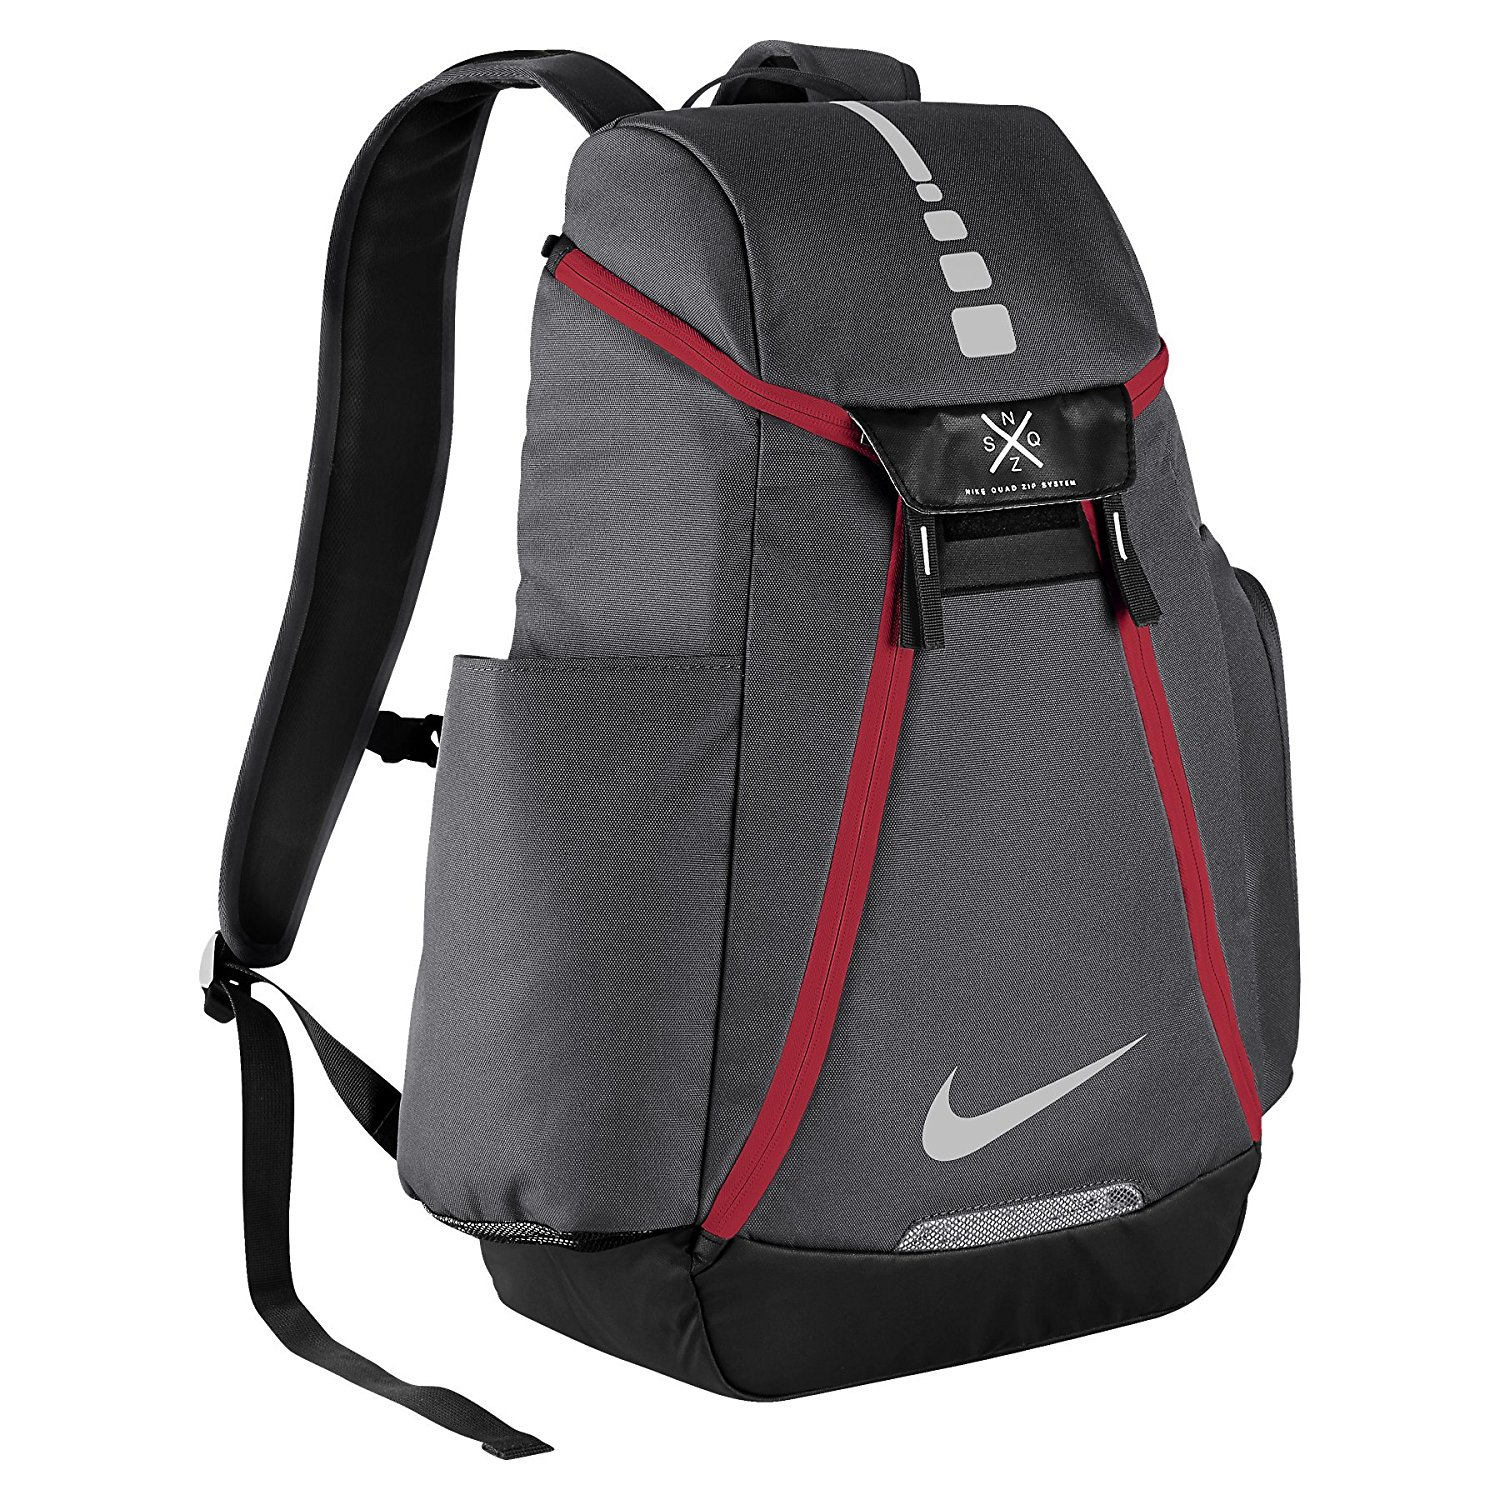 1a50fcebbf Get Quotations · Nike Hoops Elite Max Air Team 2.0 Basketball Backpack